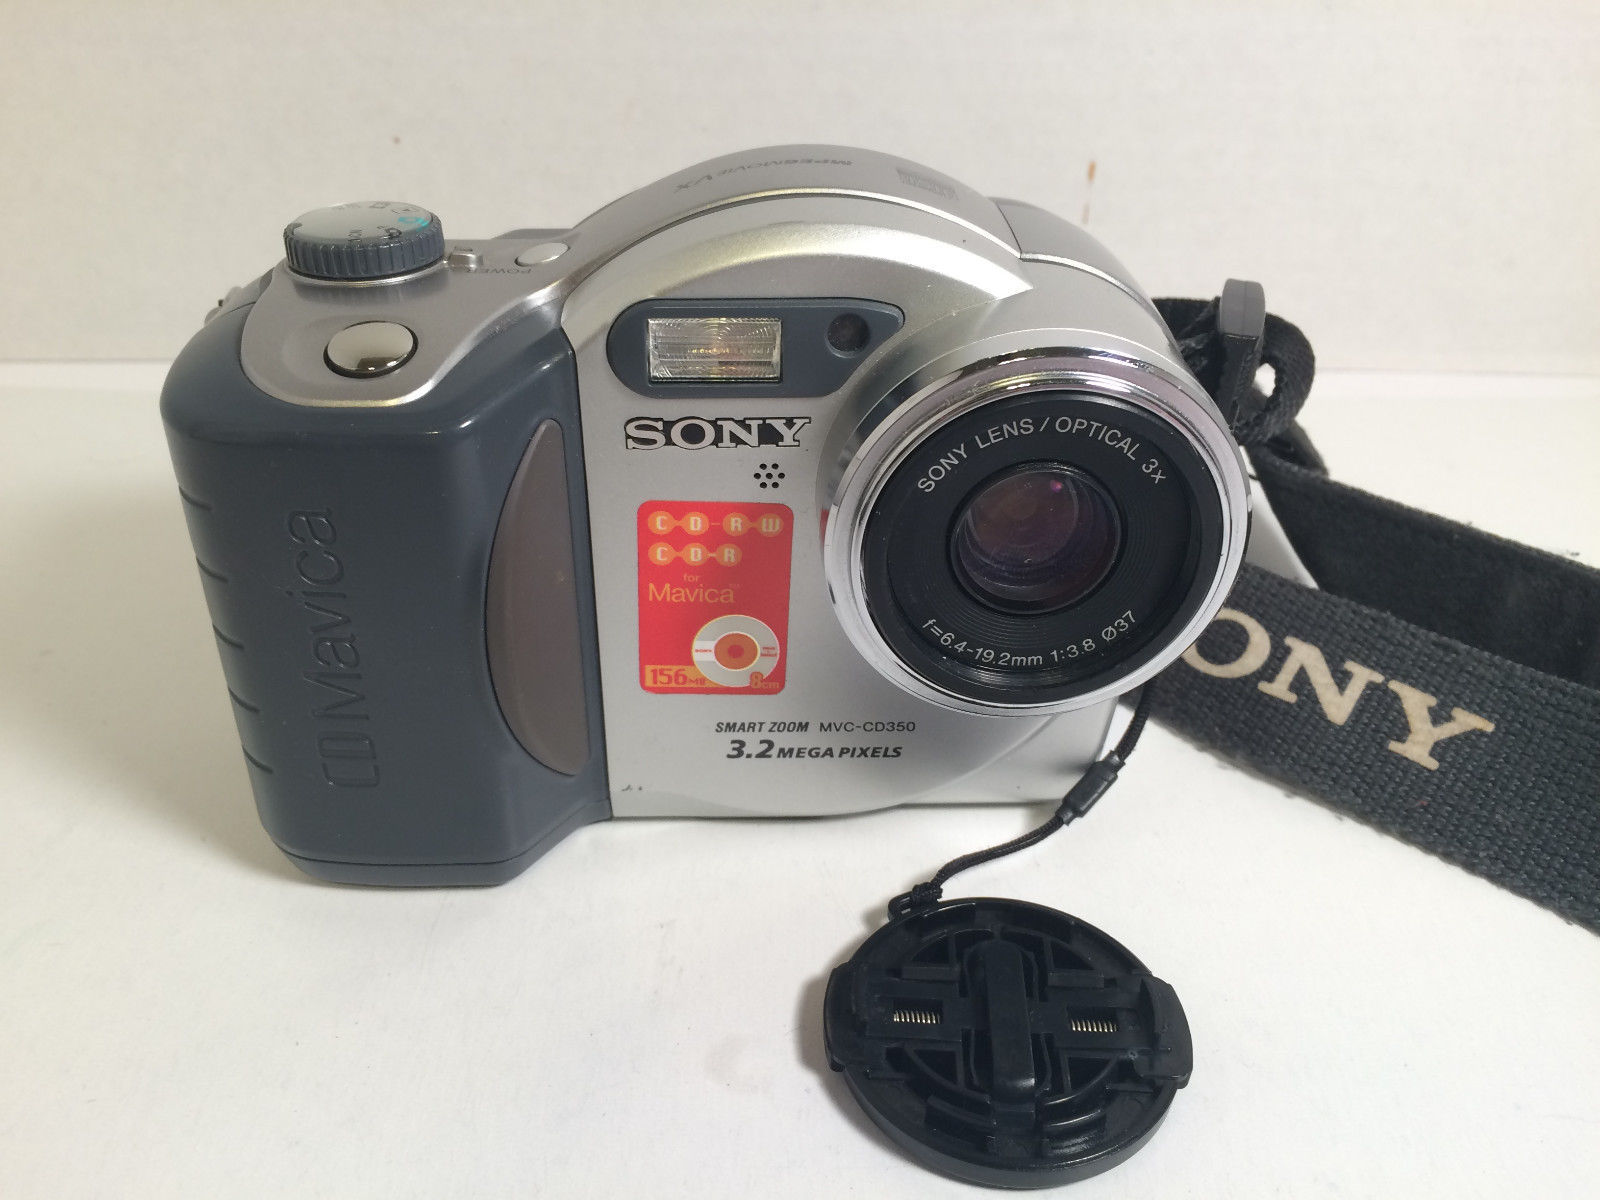 Sony Mavica MVC-CD350 3.2 MP Digital Camera - Black Silver